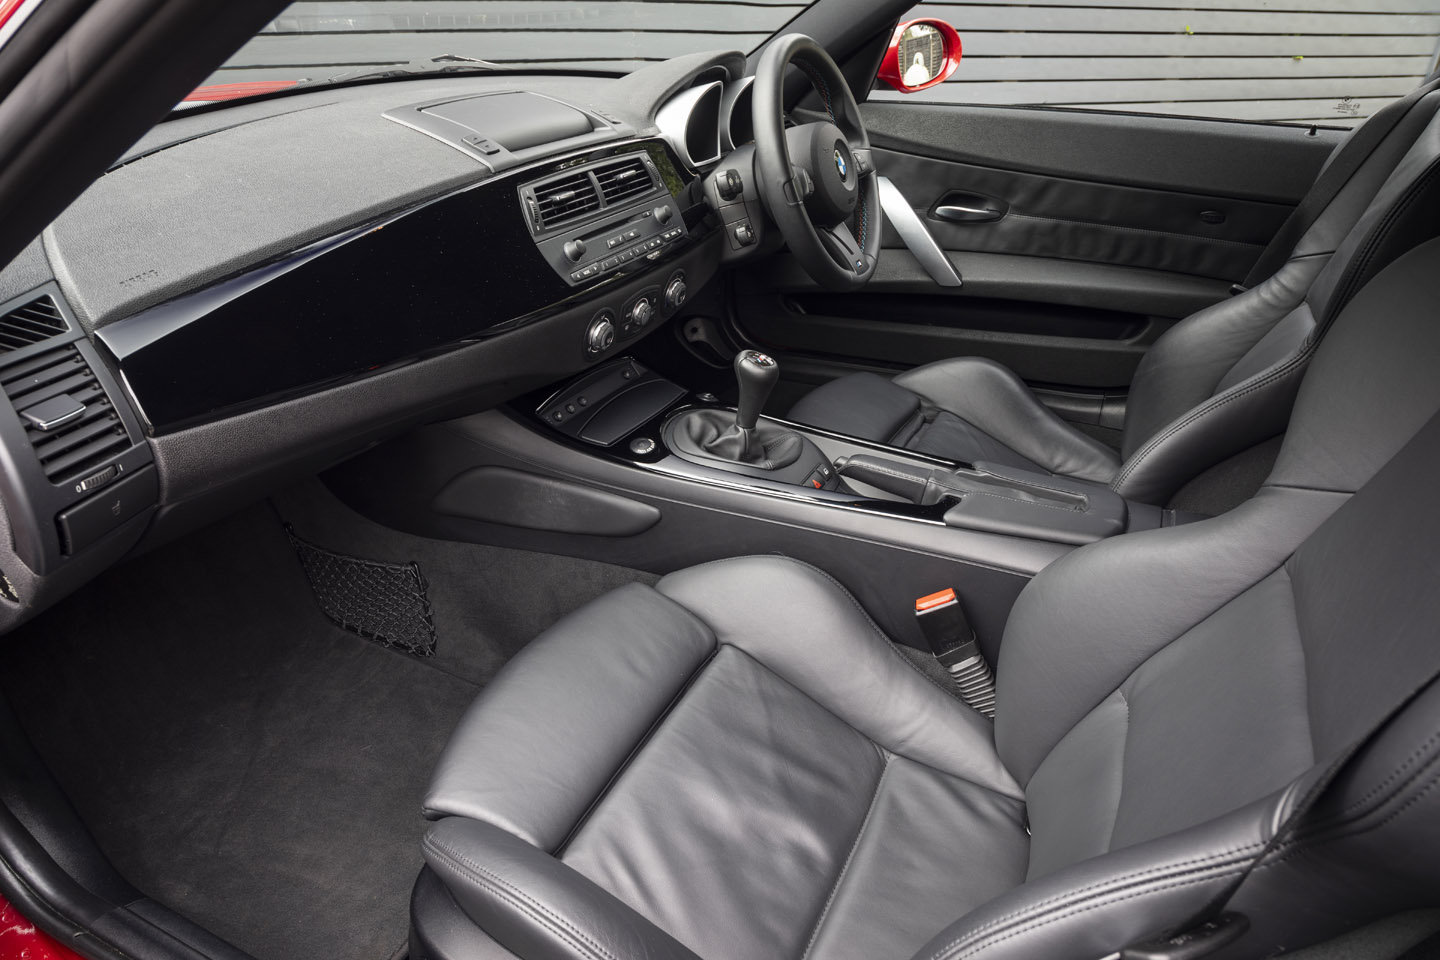 2008 BMW Z4M Coupe ONLY 3100 MILES For Sale (picture 5 of 6)